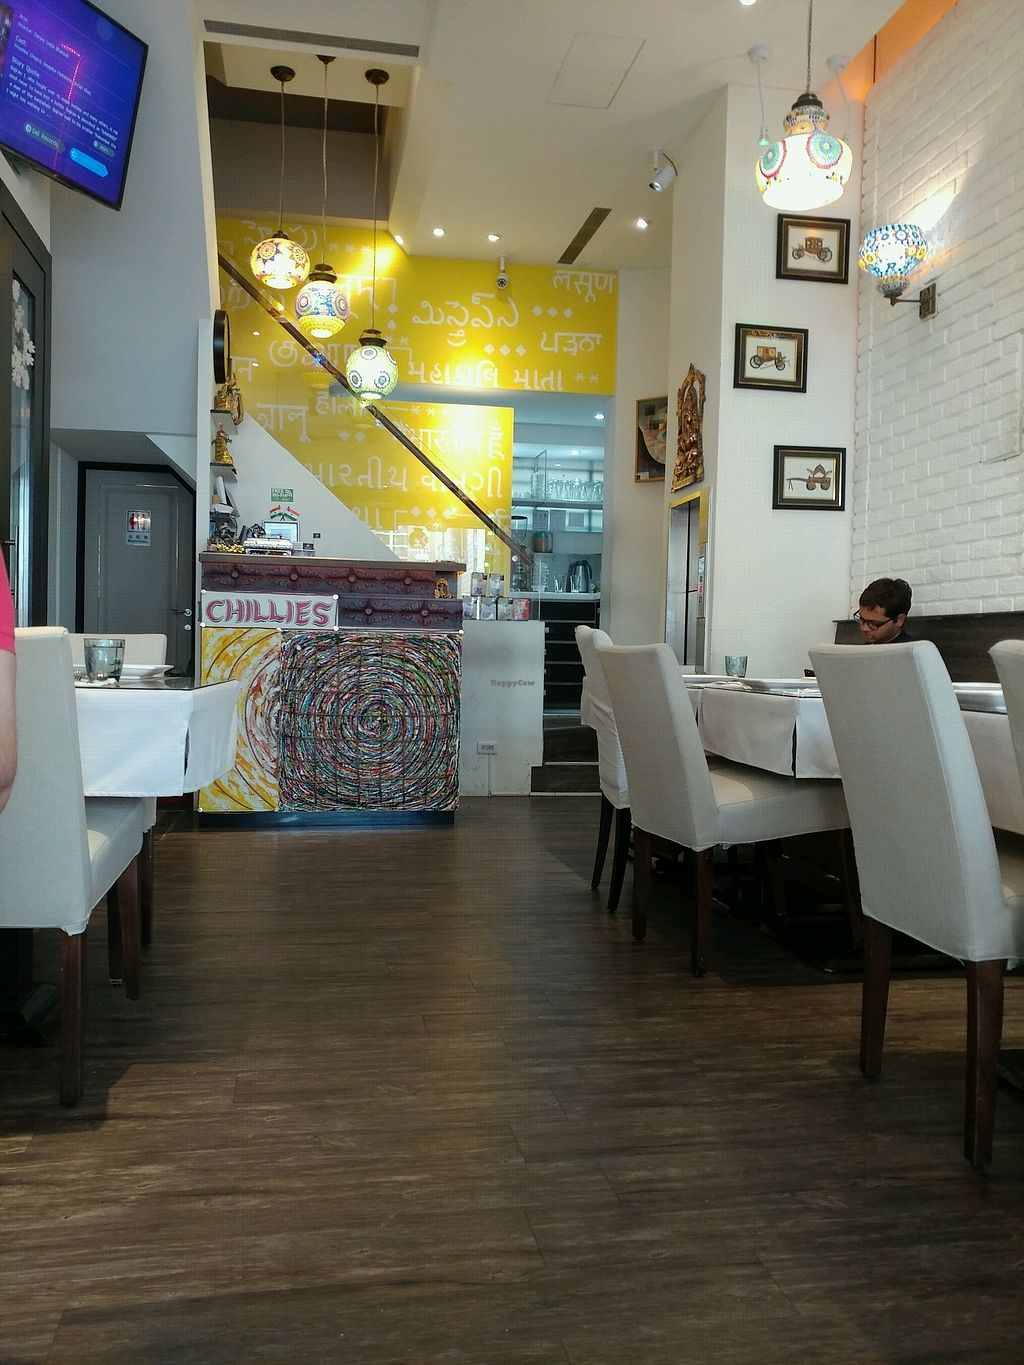 "Photo of Chillies Indian Restaurant  by <a href=""/members/profile/Seamusmack"">Seamusmack</a> <br/>Chillies 2 Interior <br/> April 8, 2018  - <a href='/contact/abuse/image/117009/382297'>Report</a>"